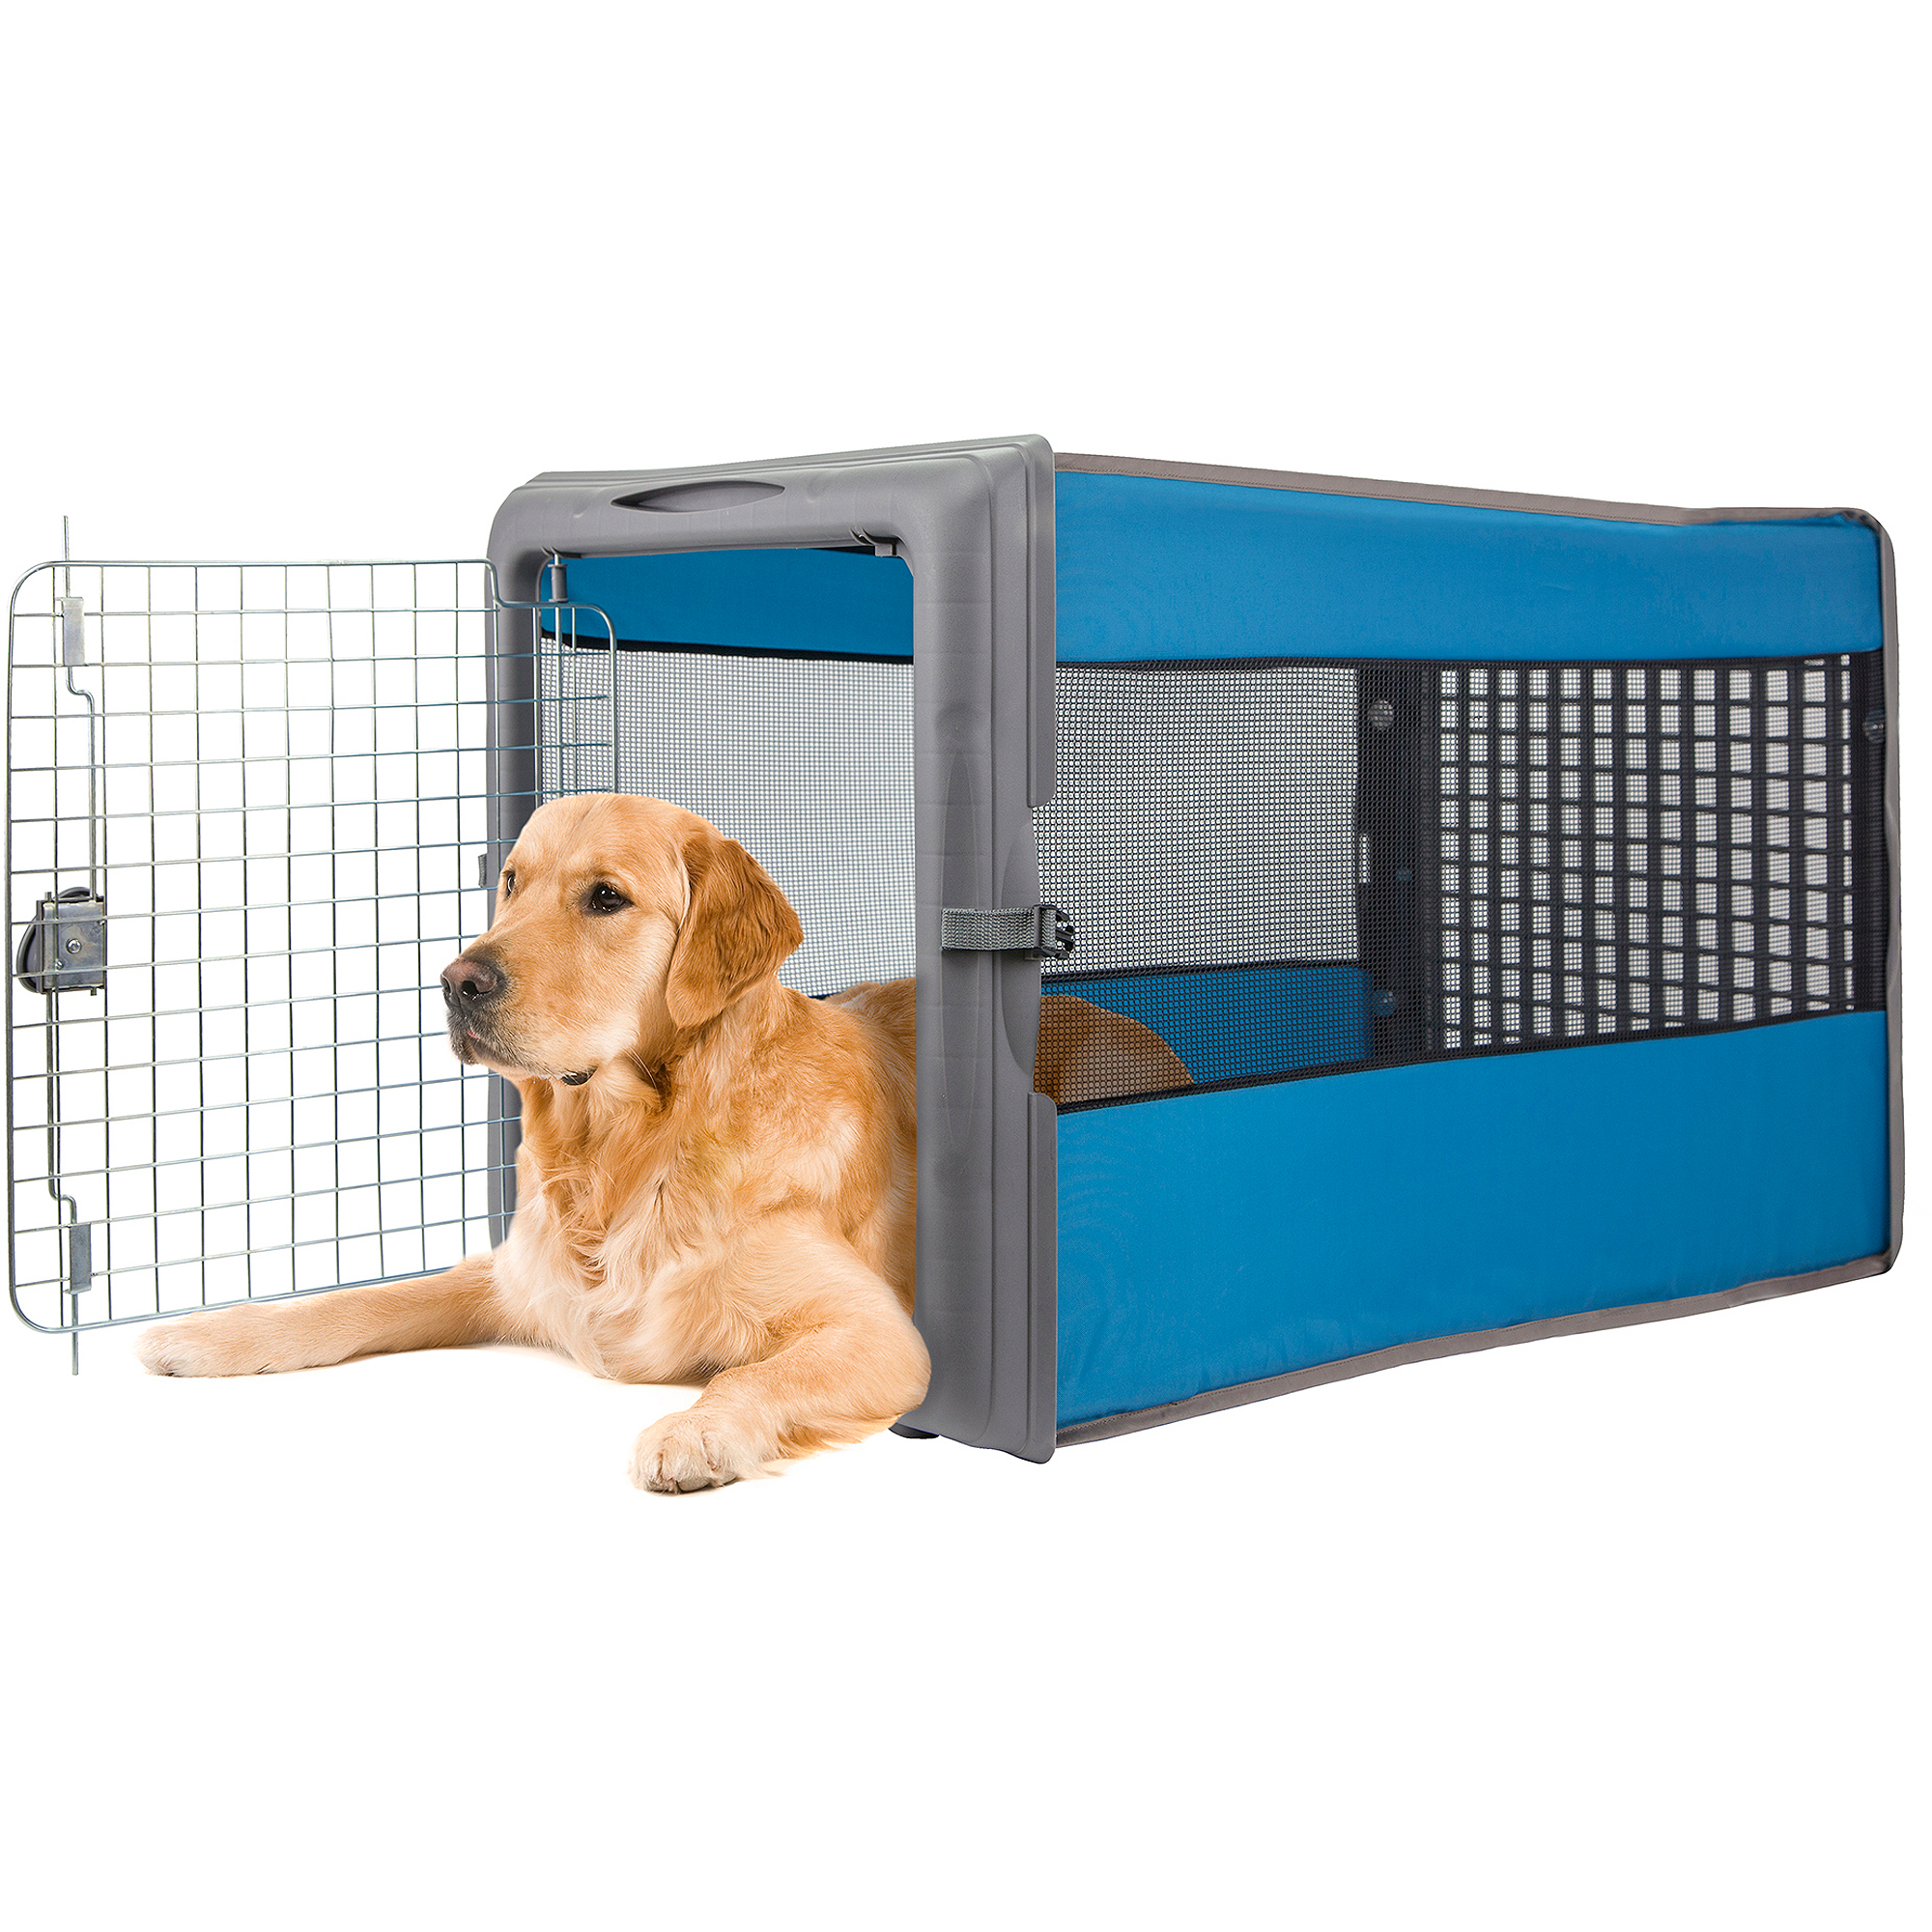 midwest dog crates 24 inch dog crate amazon large dog crate